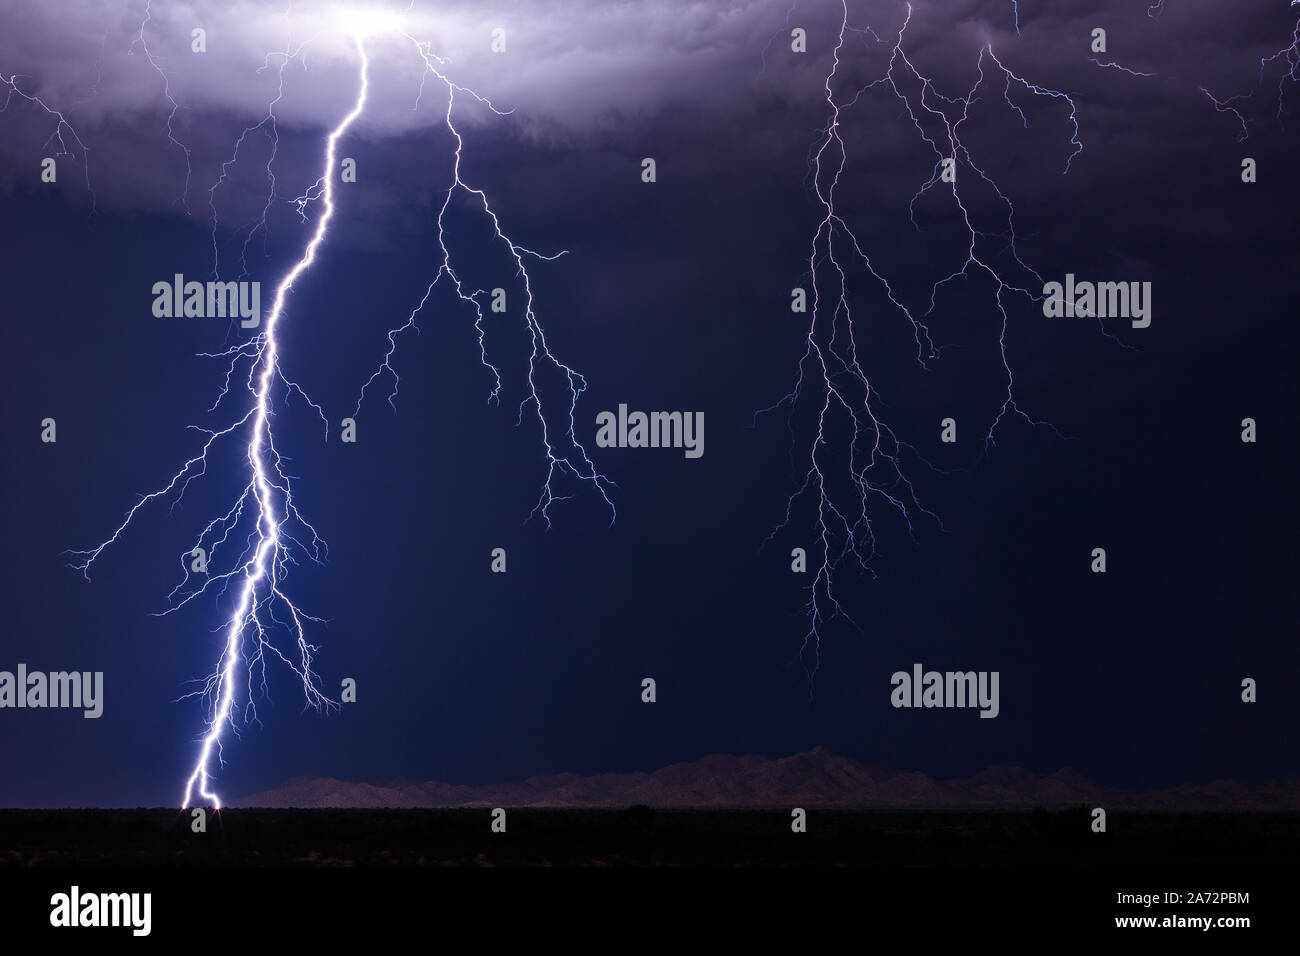 A powerful lightning bolt strikes from a thunderstorm in the Arizona desert near Gila Bend. Stock Photo